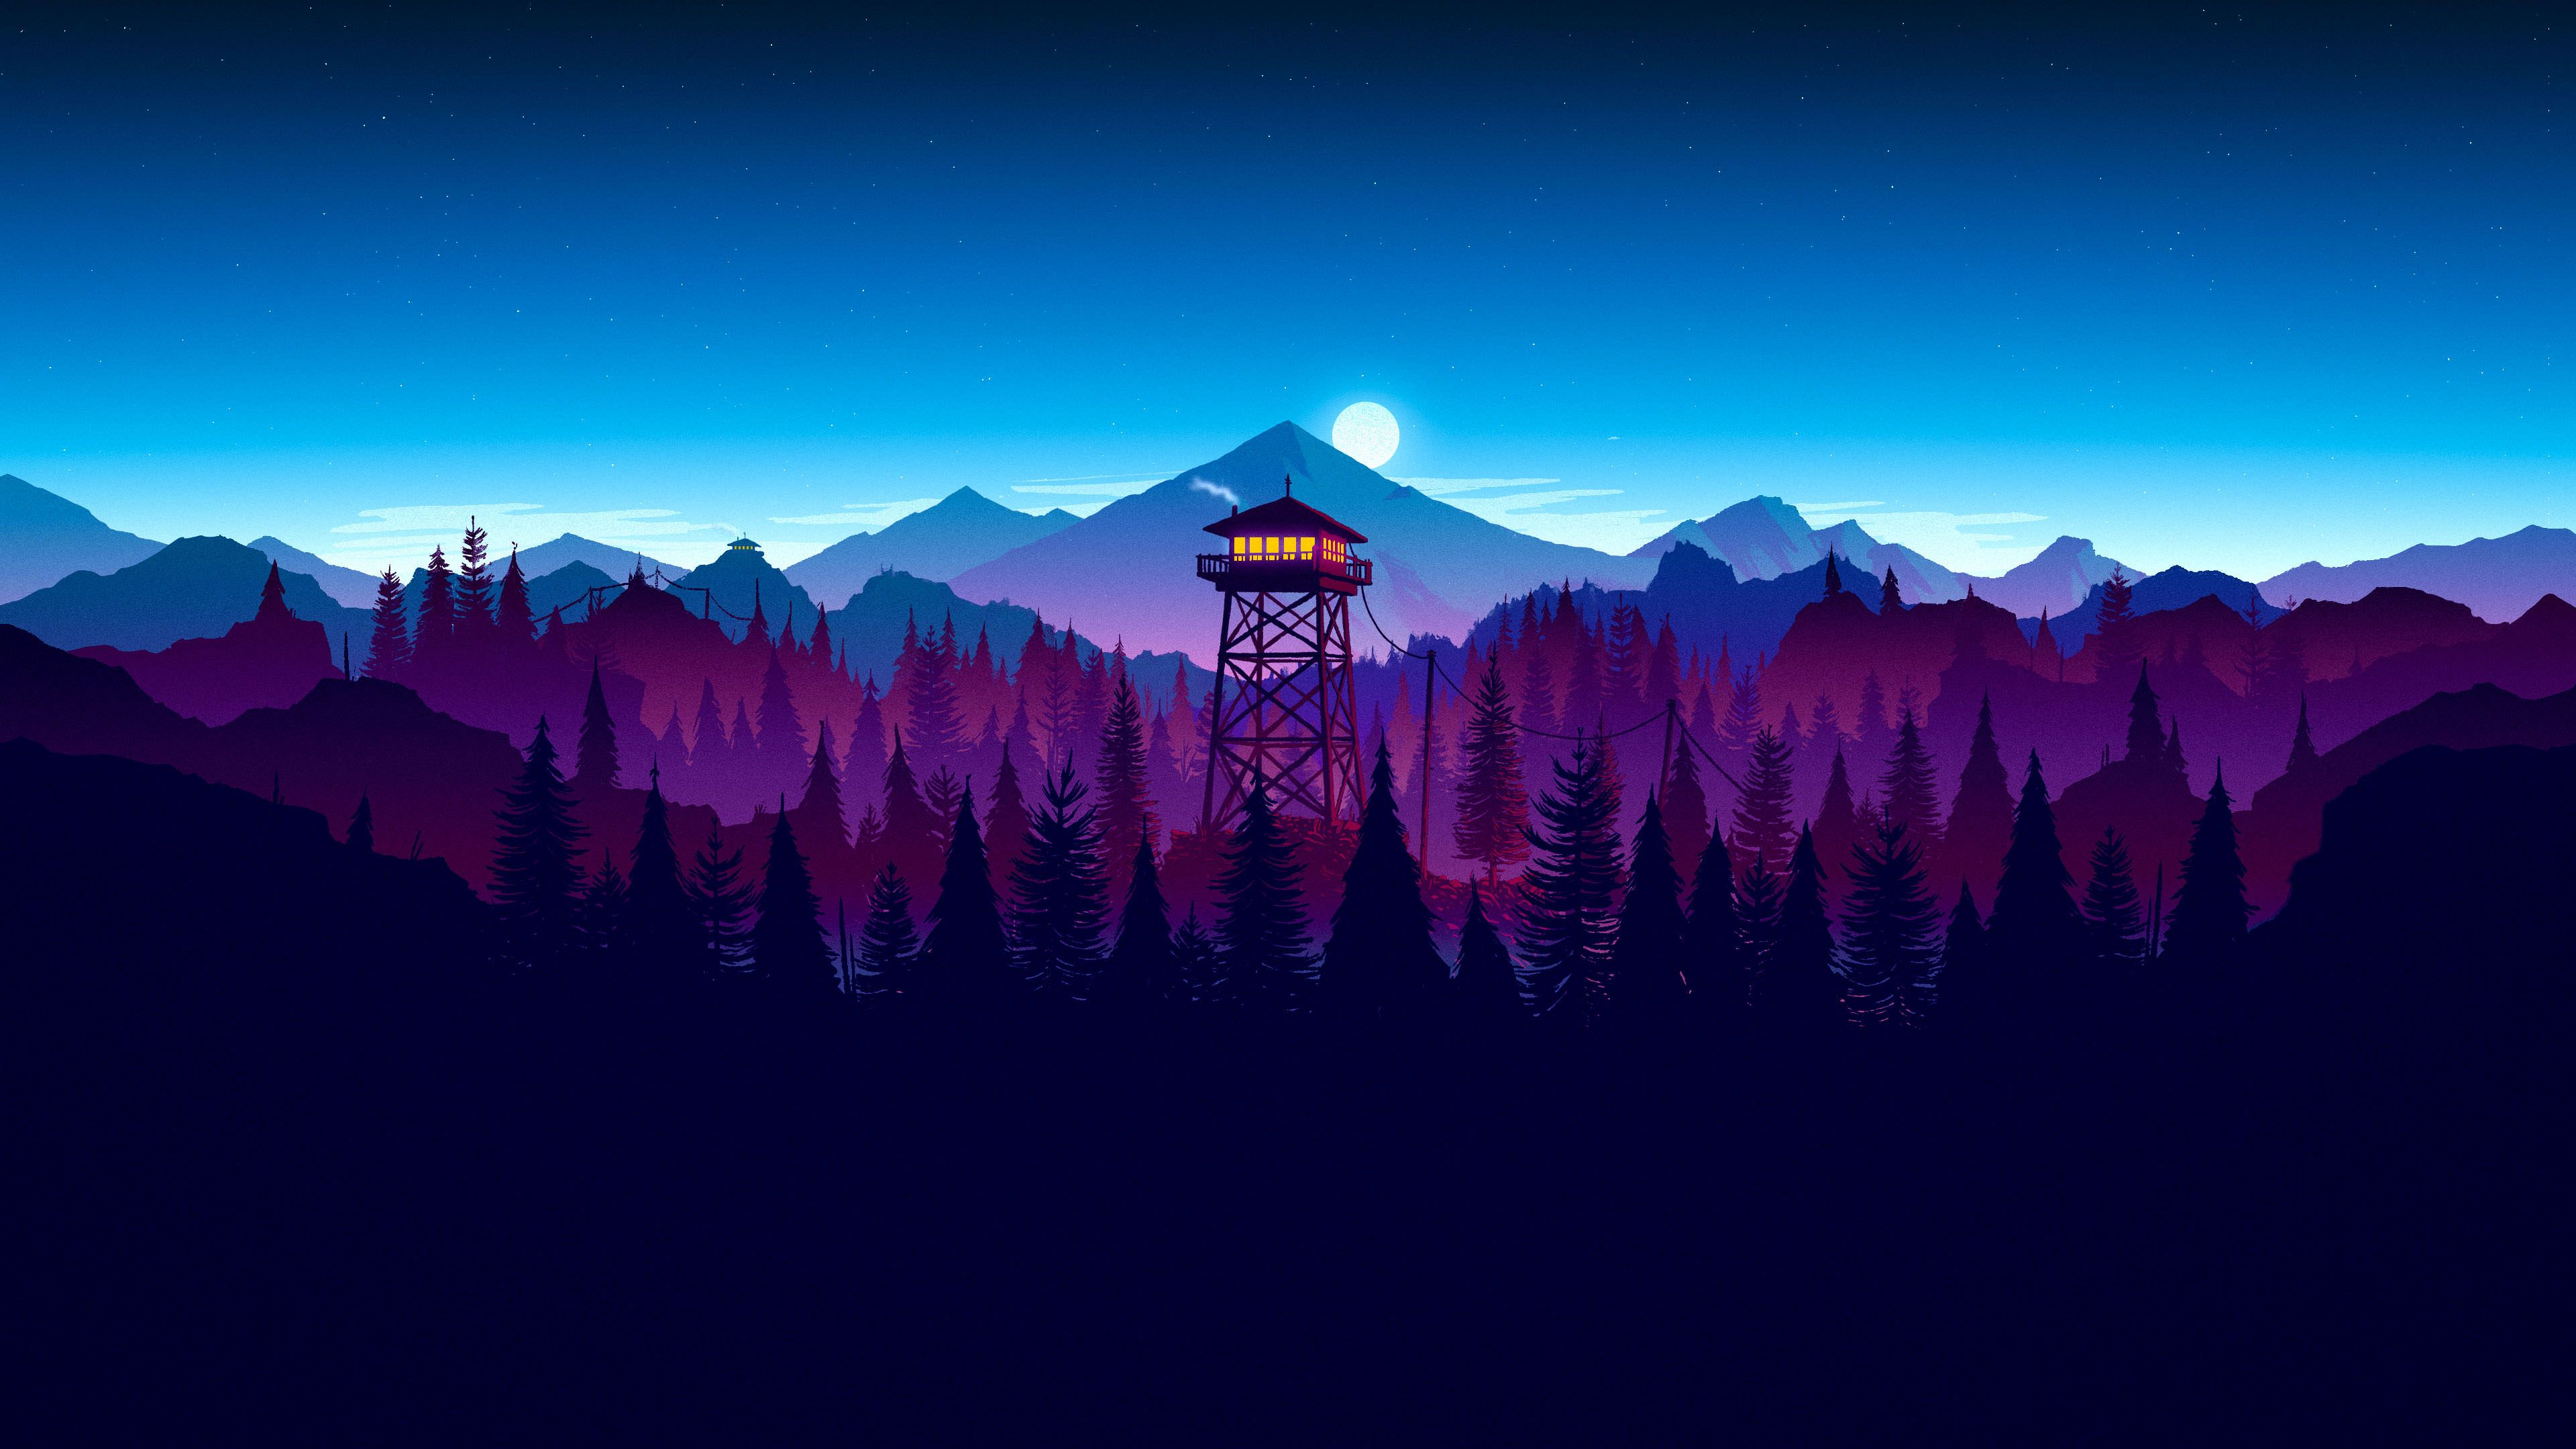 Purple And Blue Gaming Wallpapers Top Free Purple And Blue Gaming Backgrounds Wallpaperaccess The sound bar is also the companion box av box so it has to be connected to the tv but you do not have to use. purple and blue gaming wallpapers top